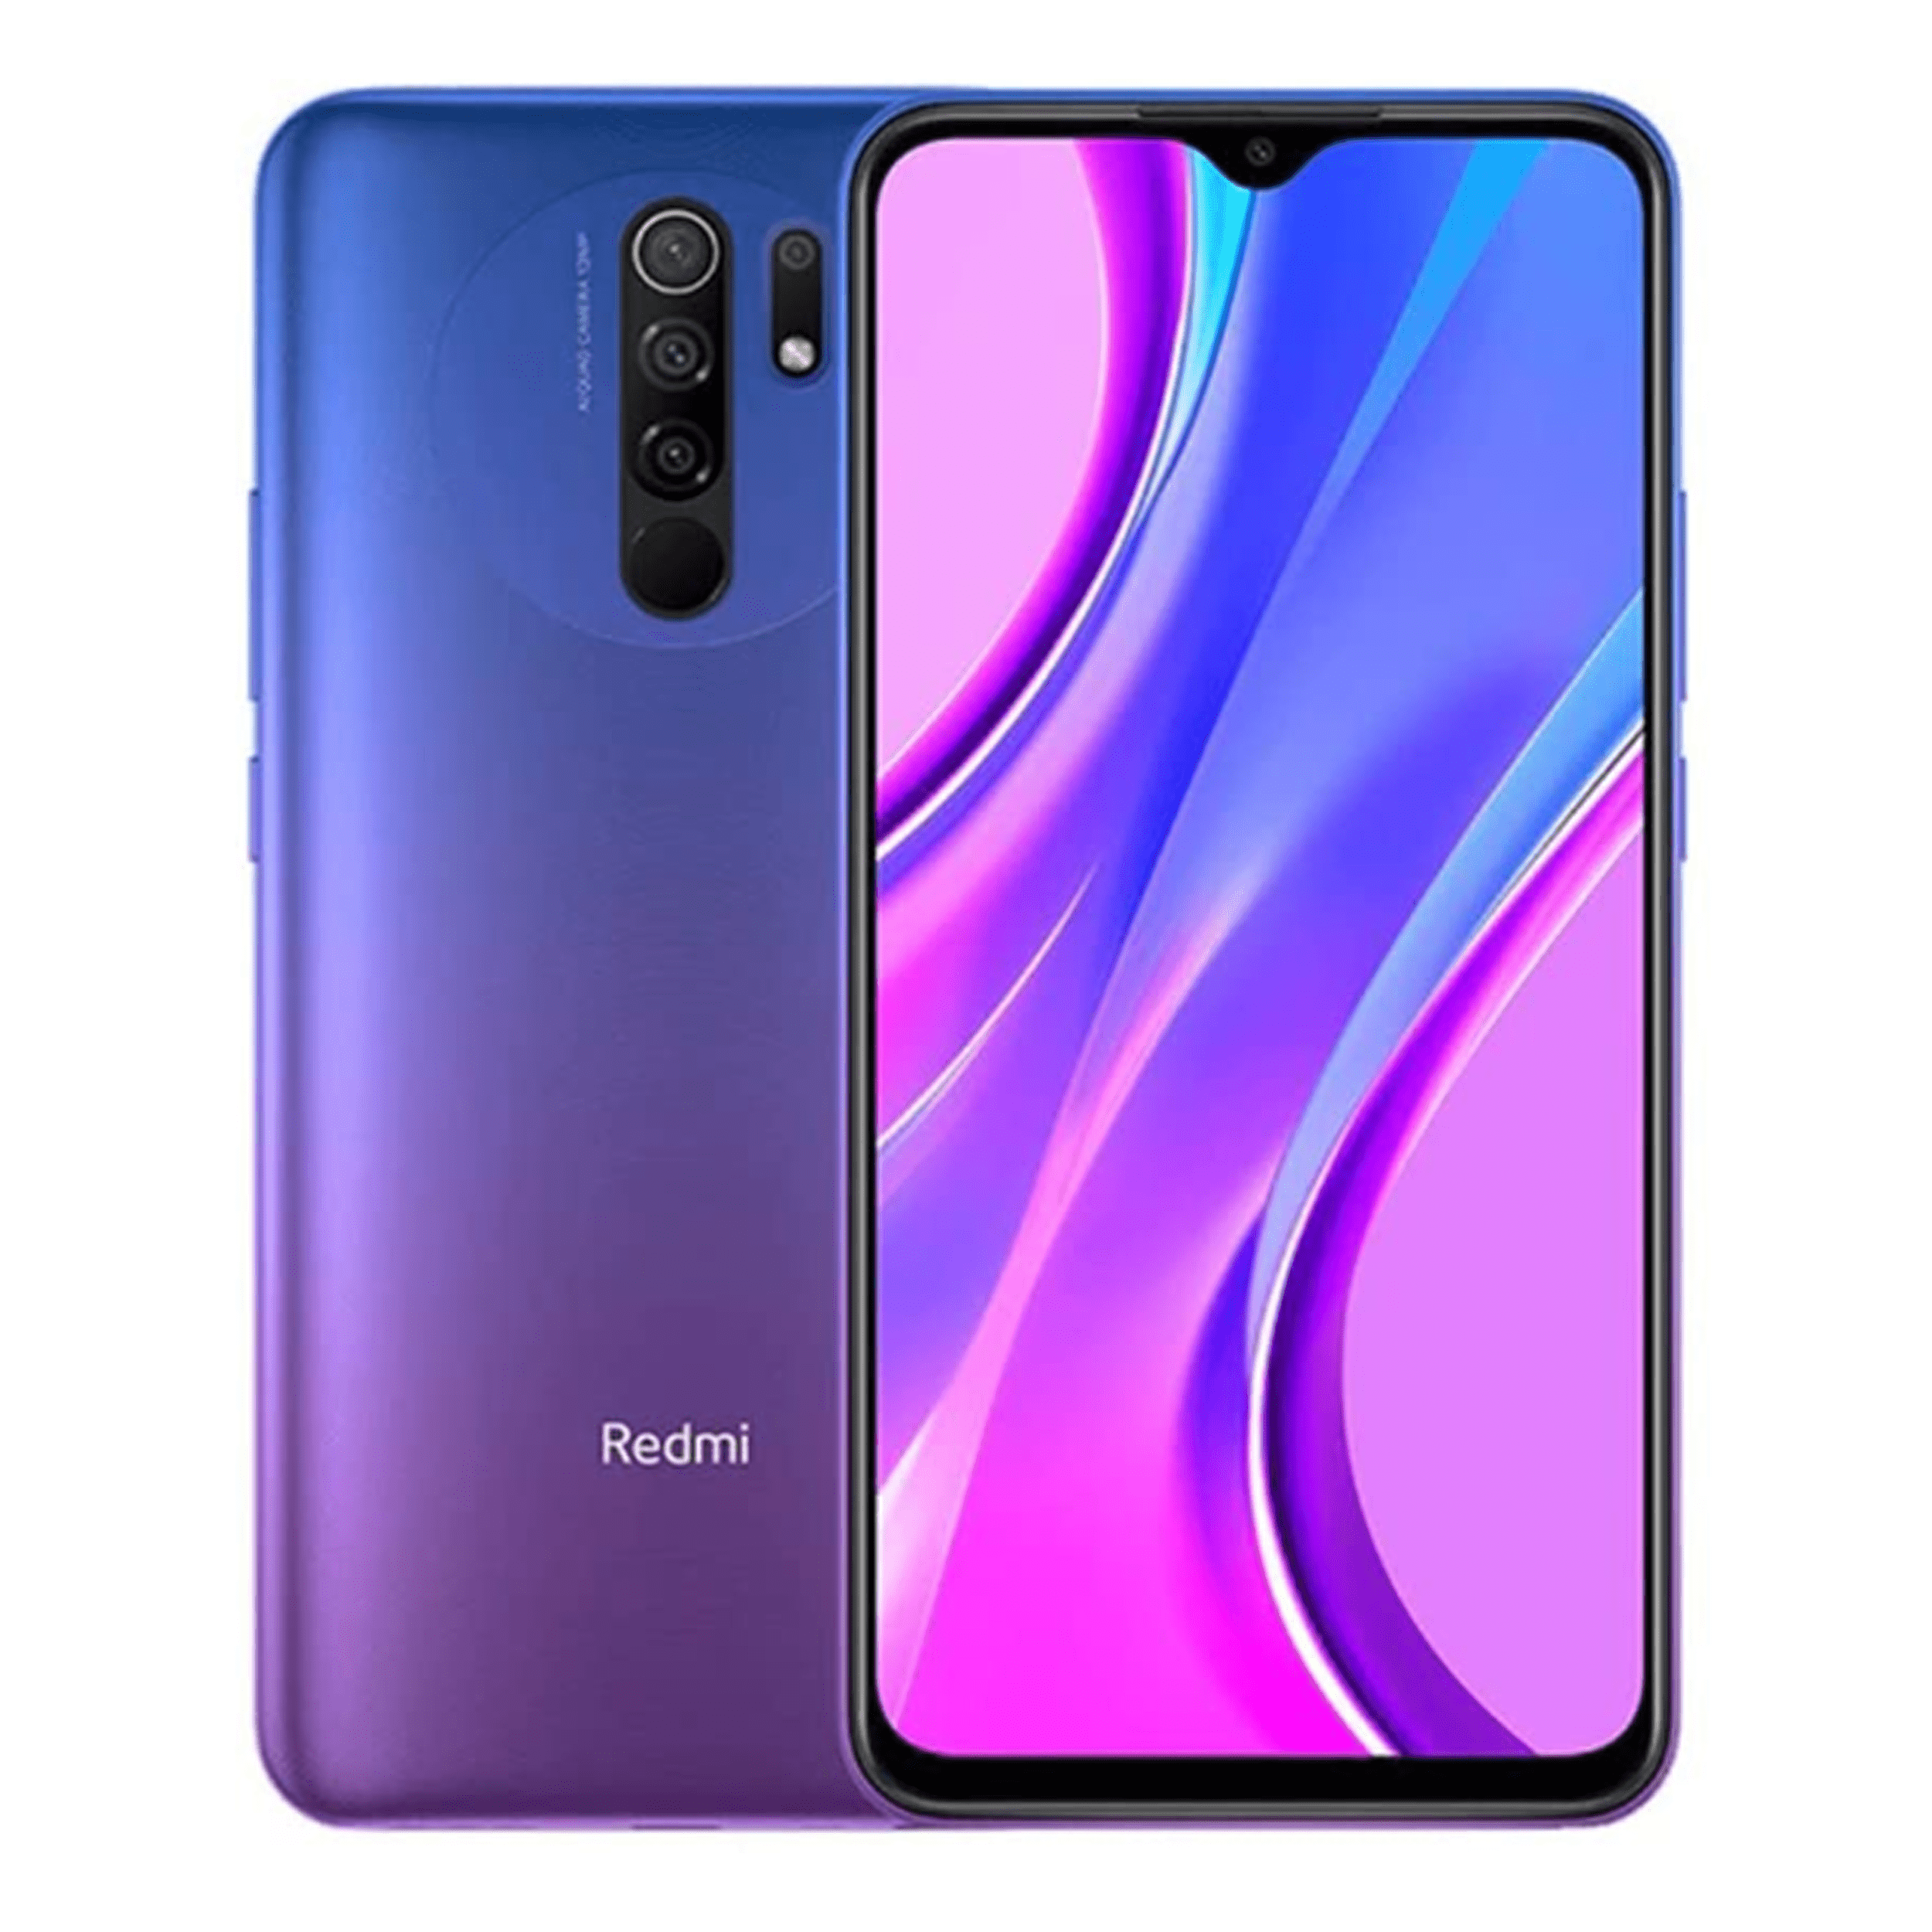 XIAOMI REDMI 9 DS 4GB / 64GB - PURPLE EU Image